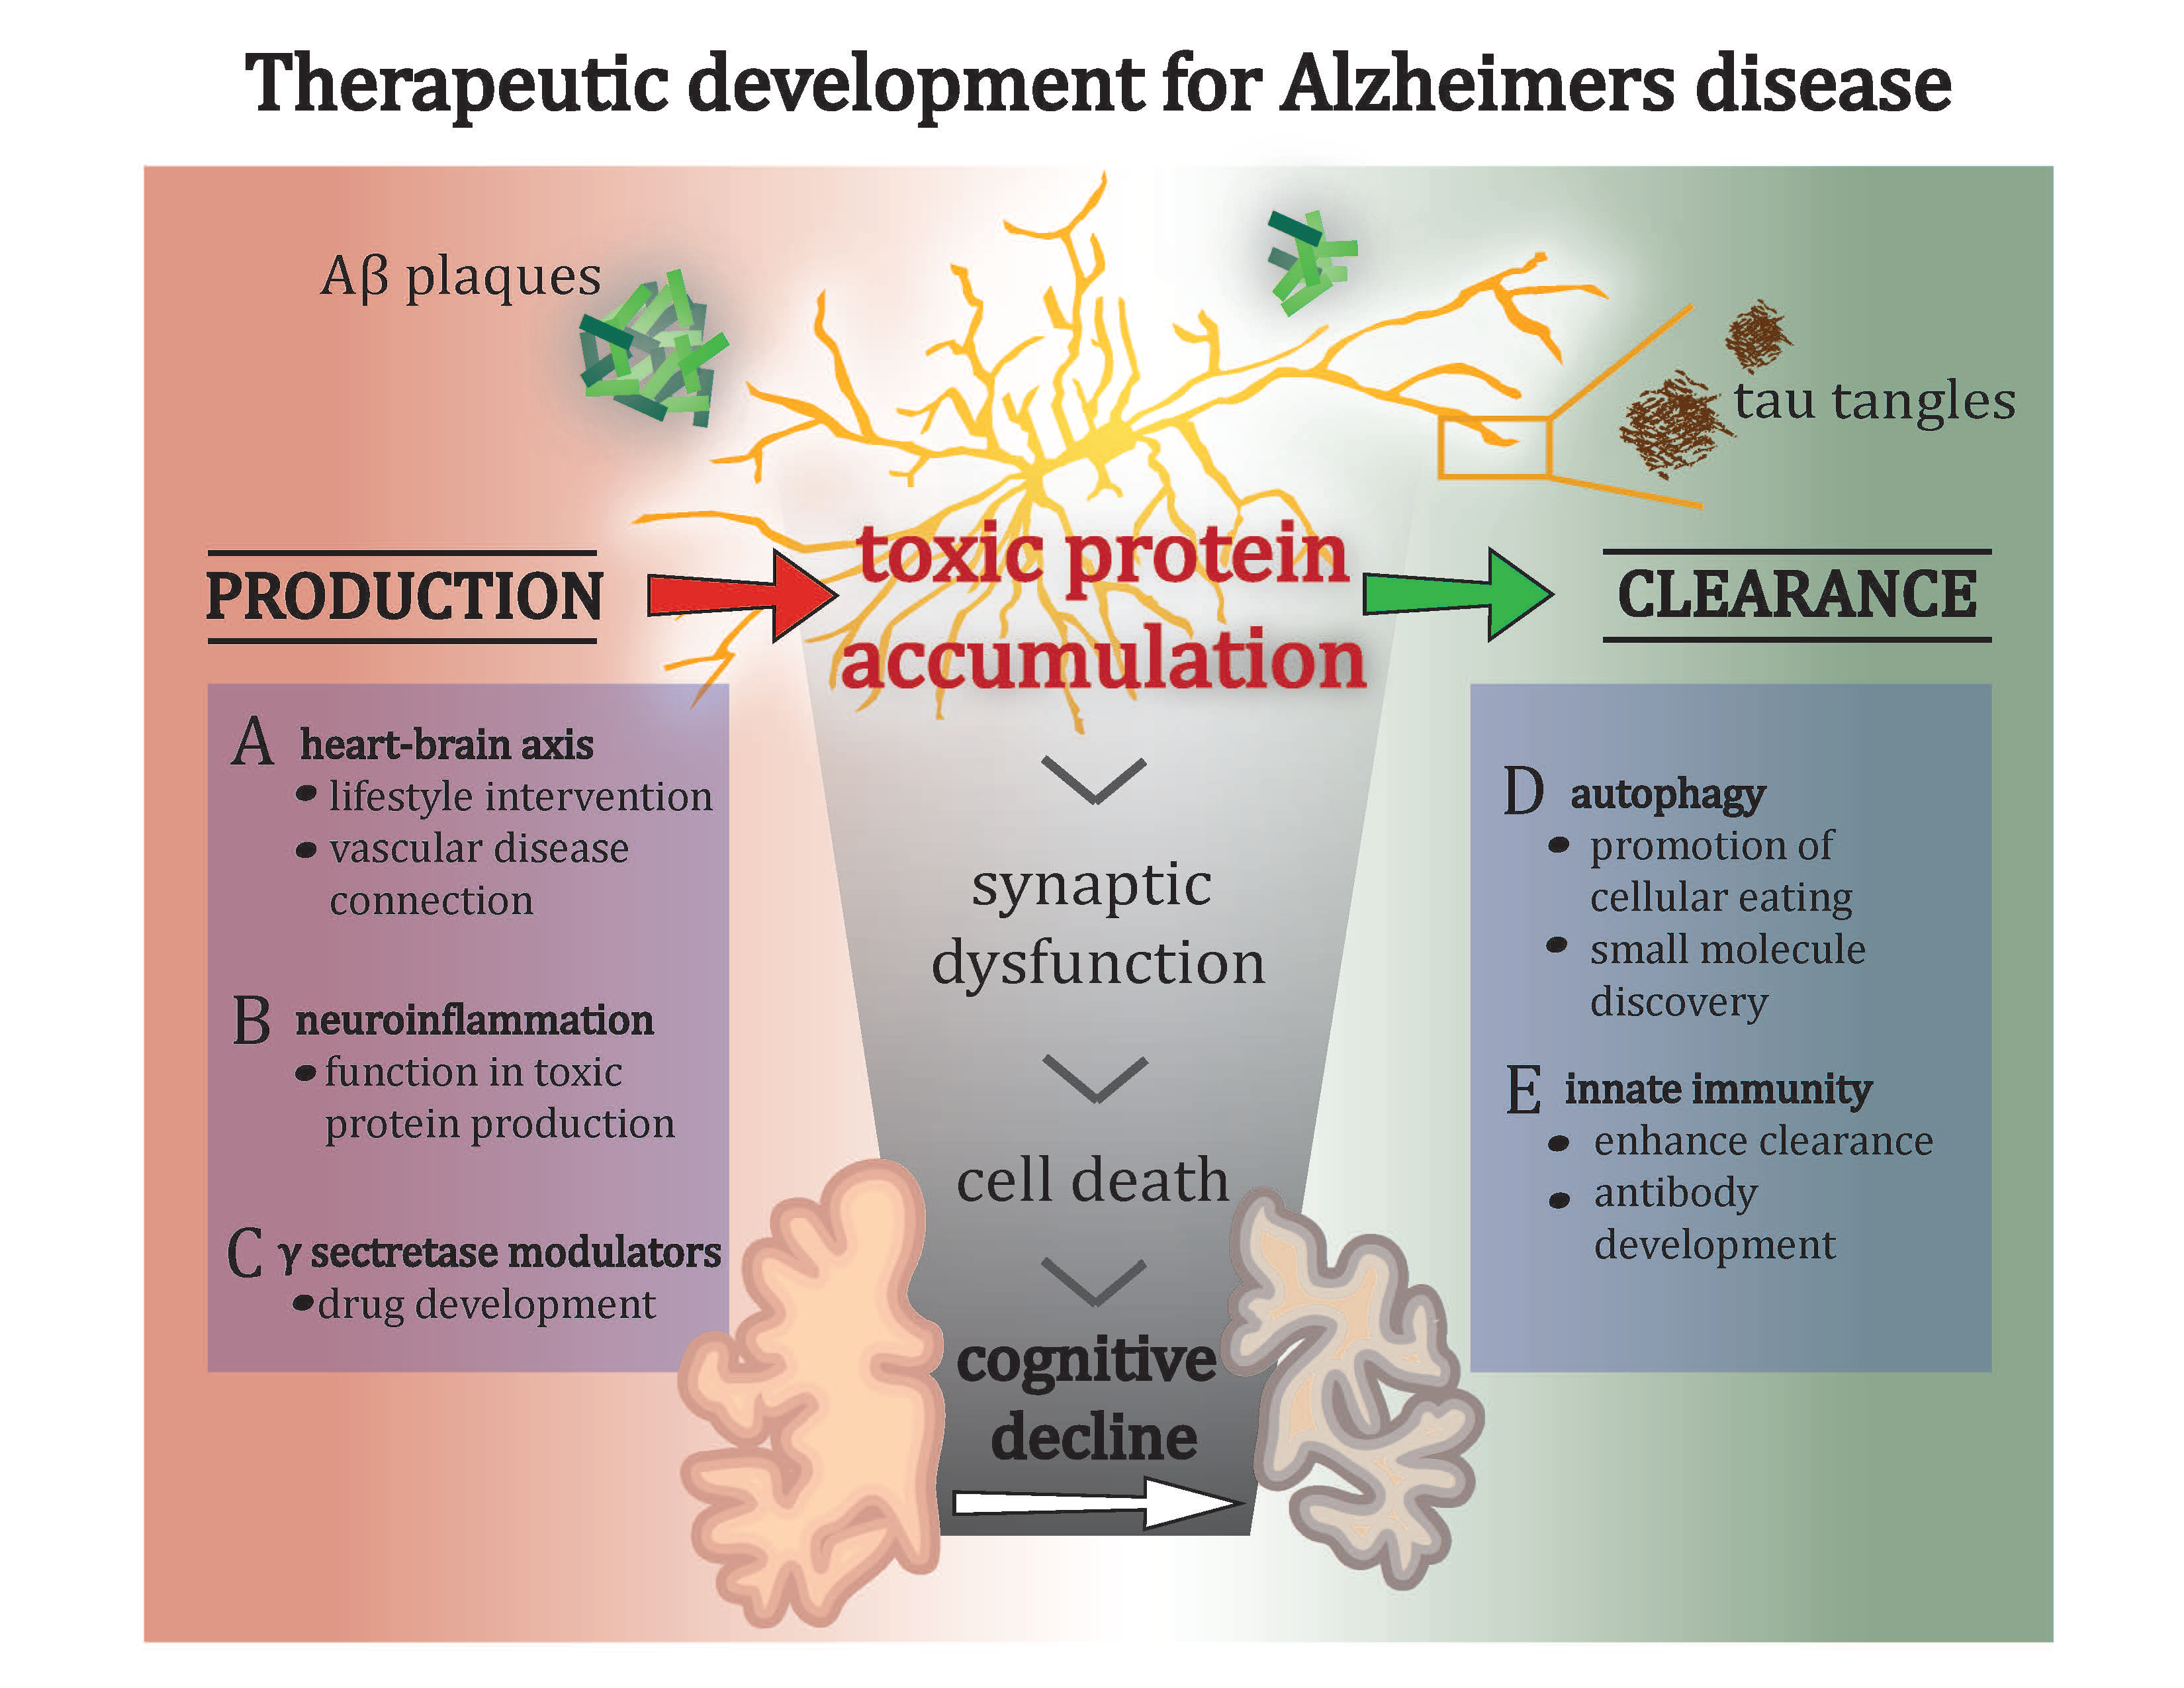 Theraputic Development for Alzheimers Disease